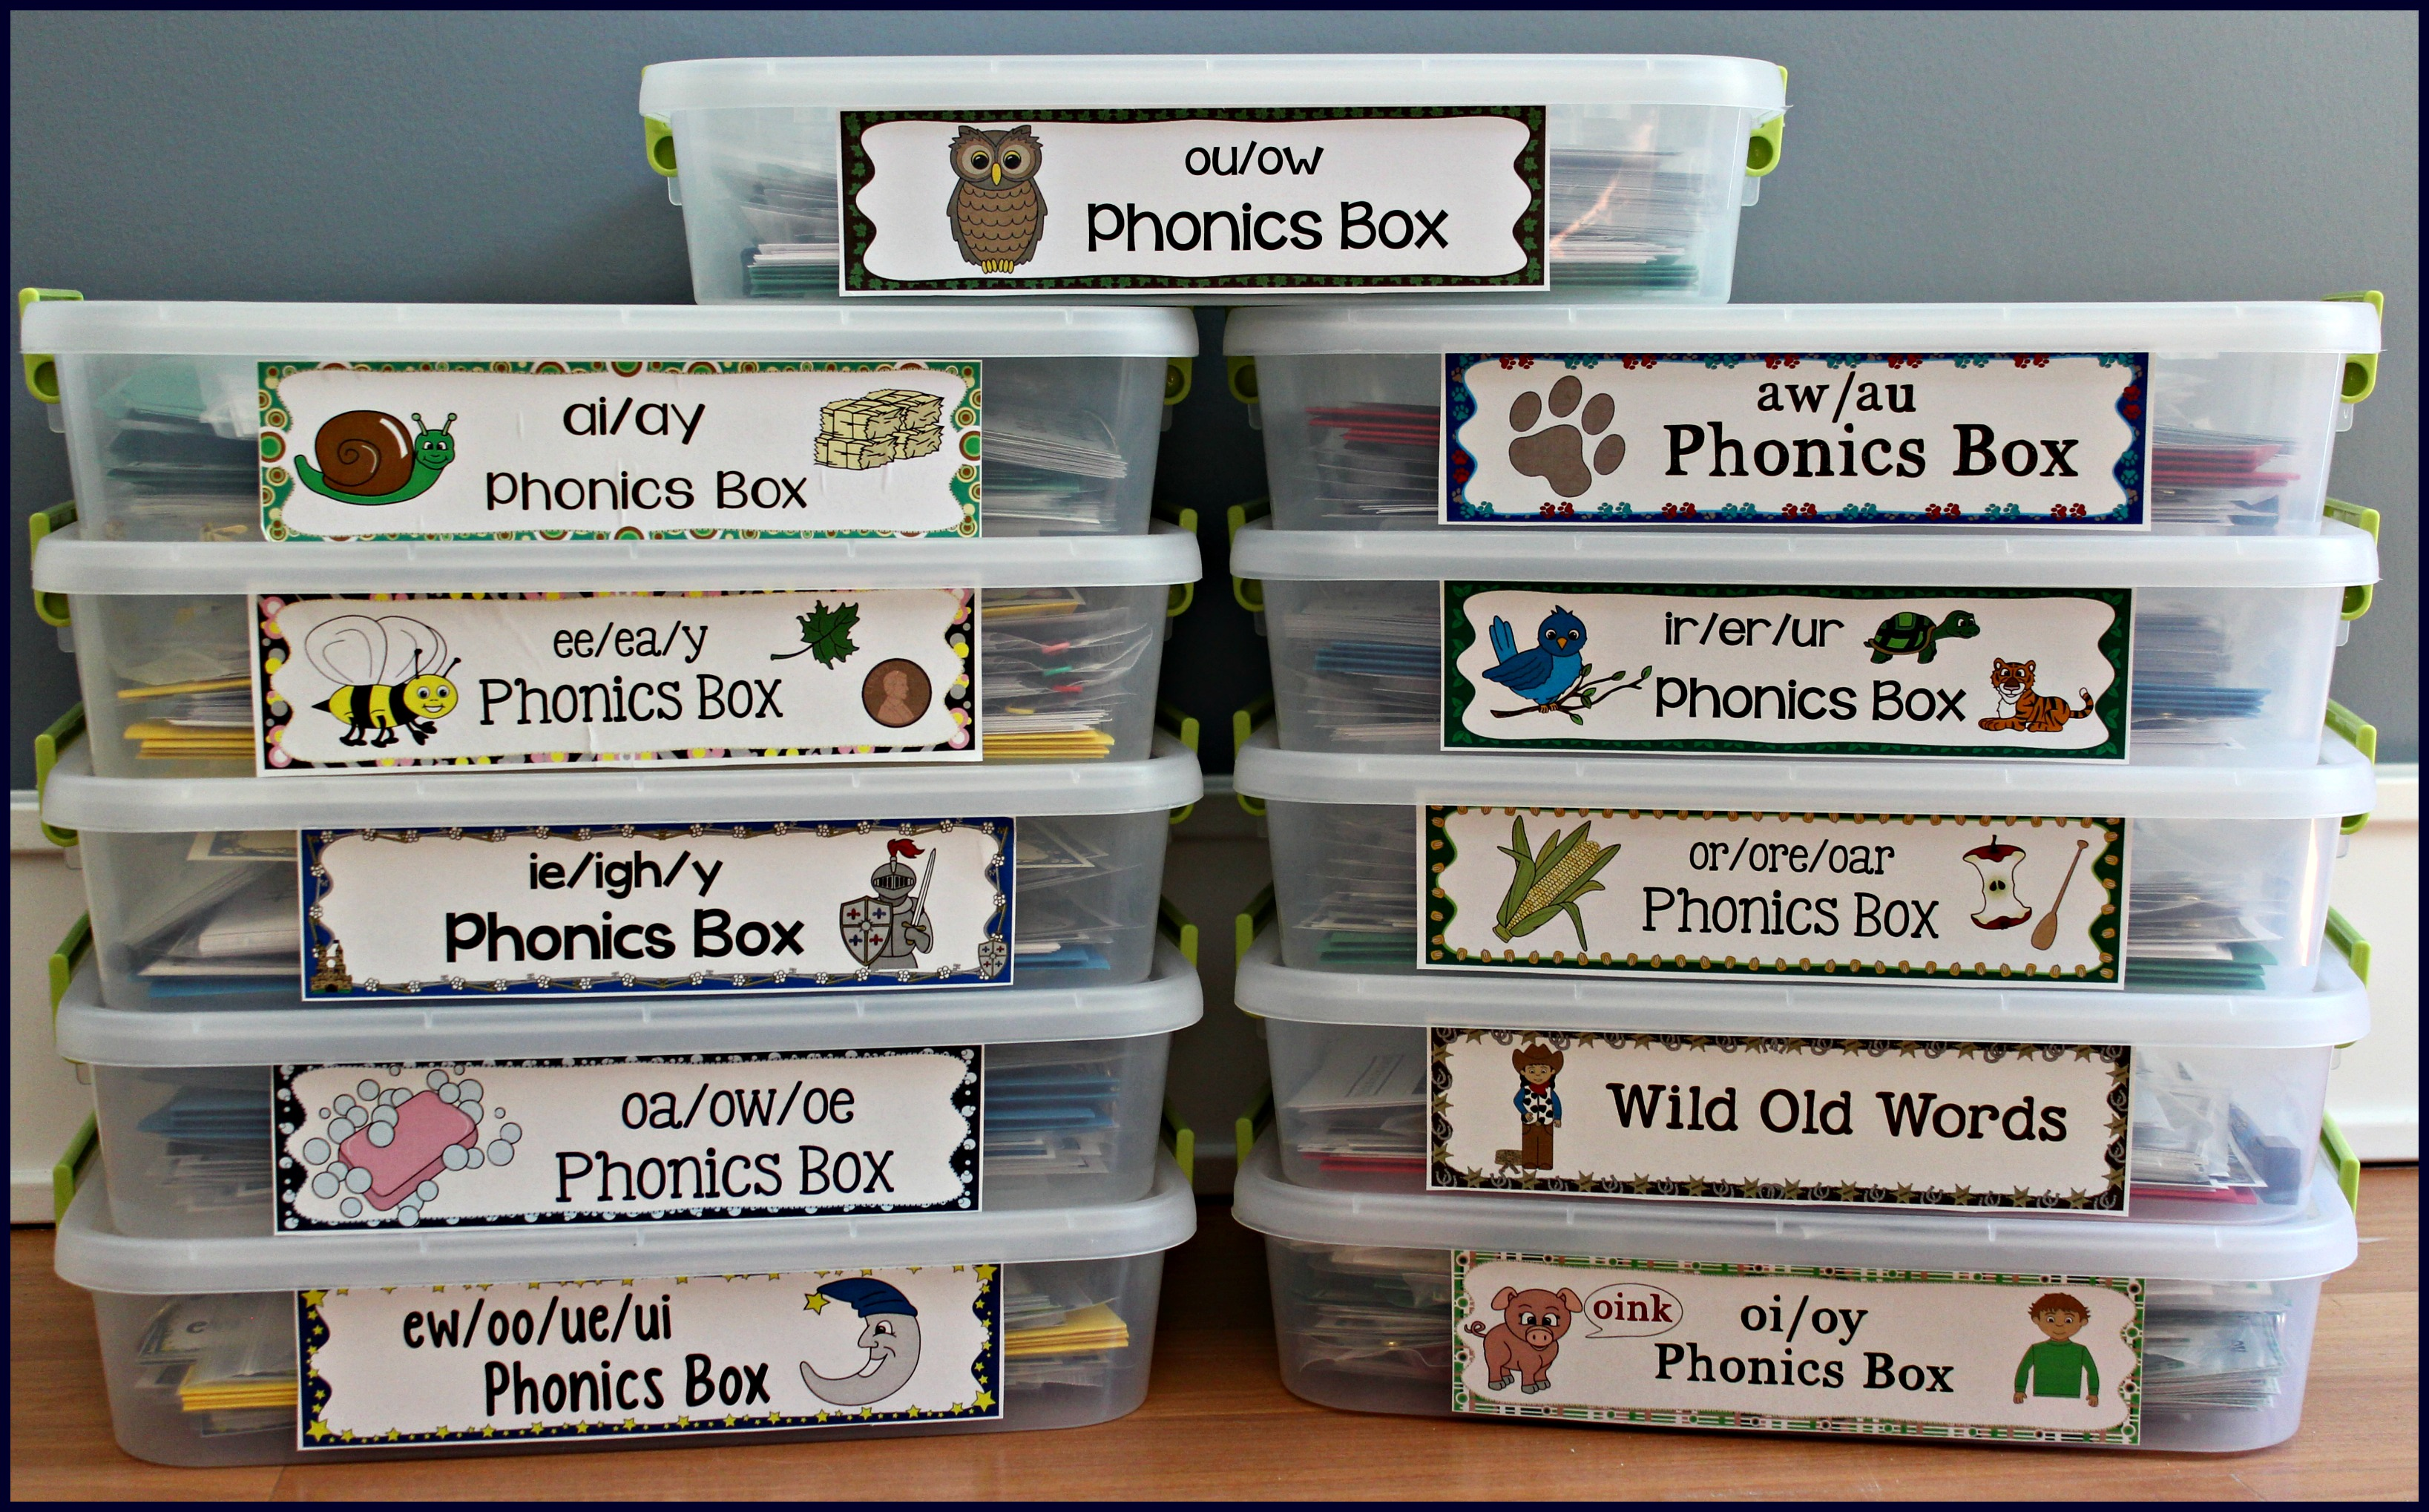 phonics activities Activities for Teaching the oaowoe